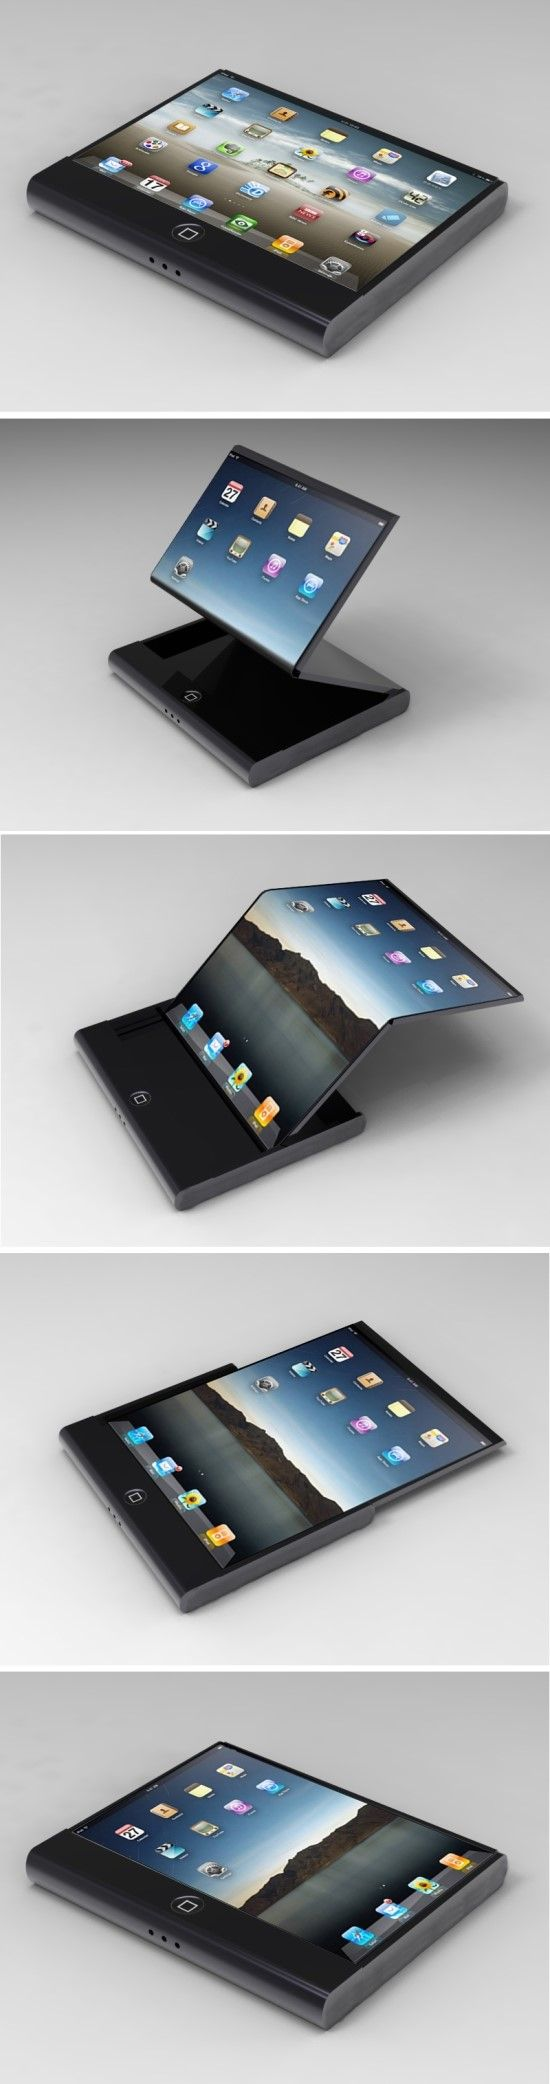 iPhone_flexible_concept_3